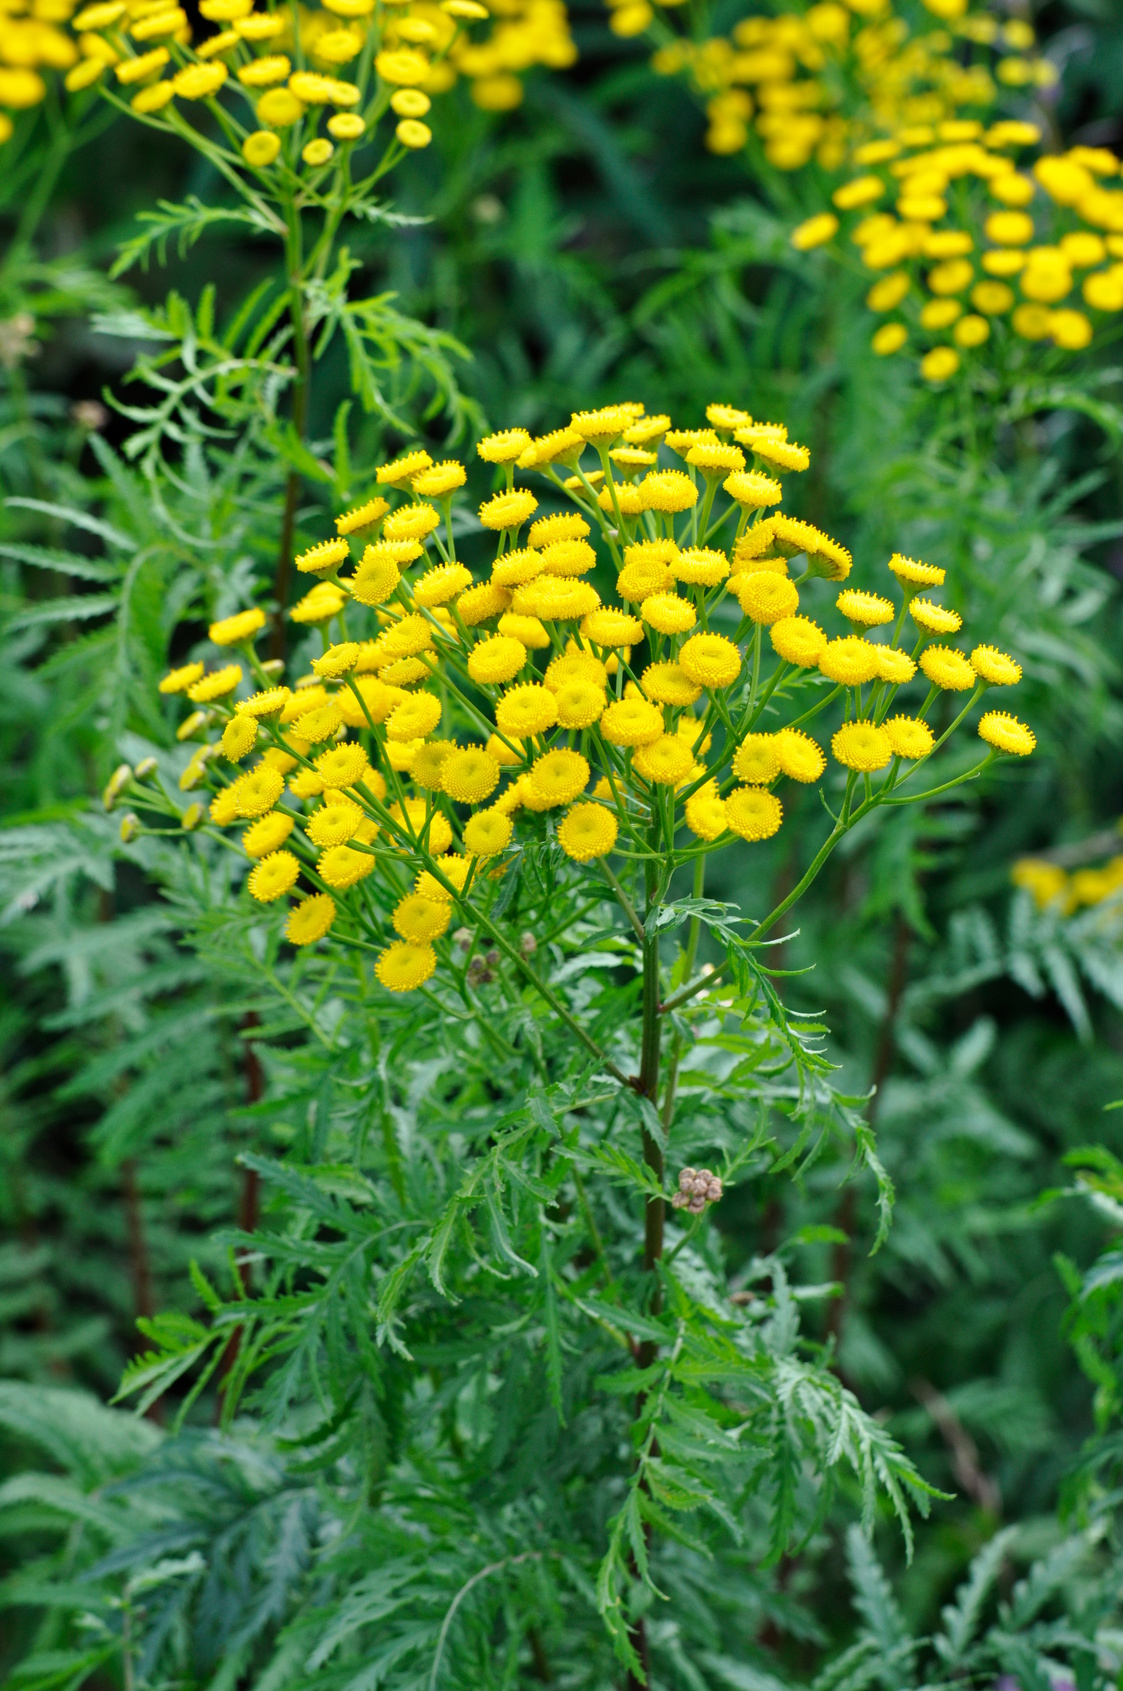 Yellow tansy growing in a meadow